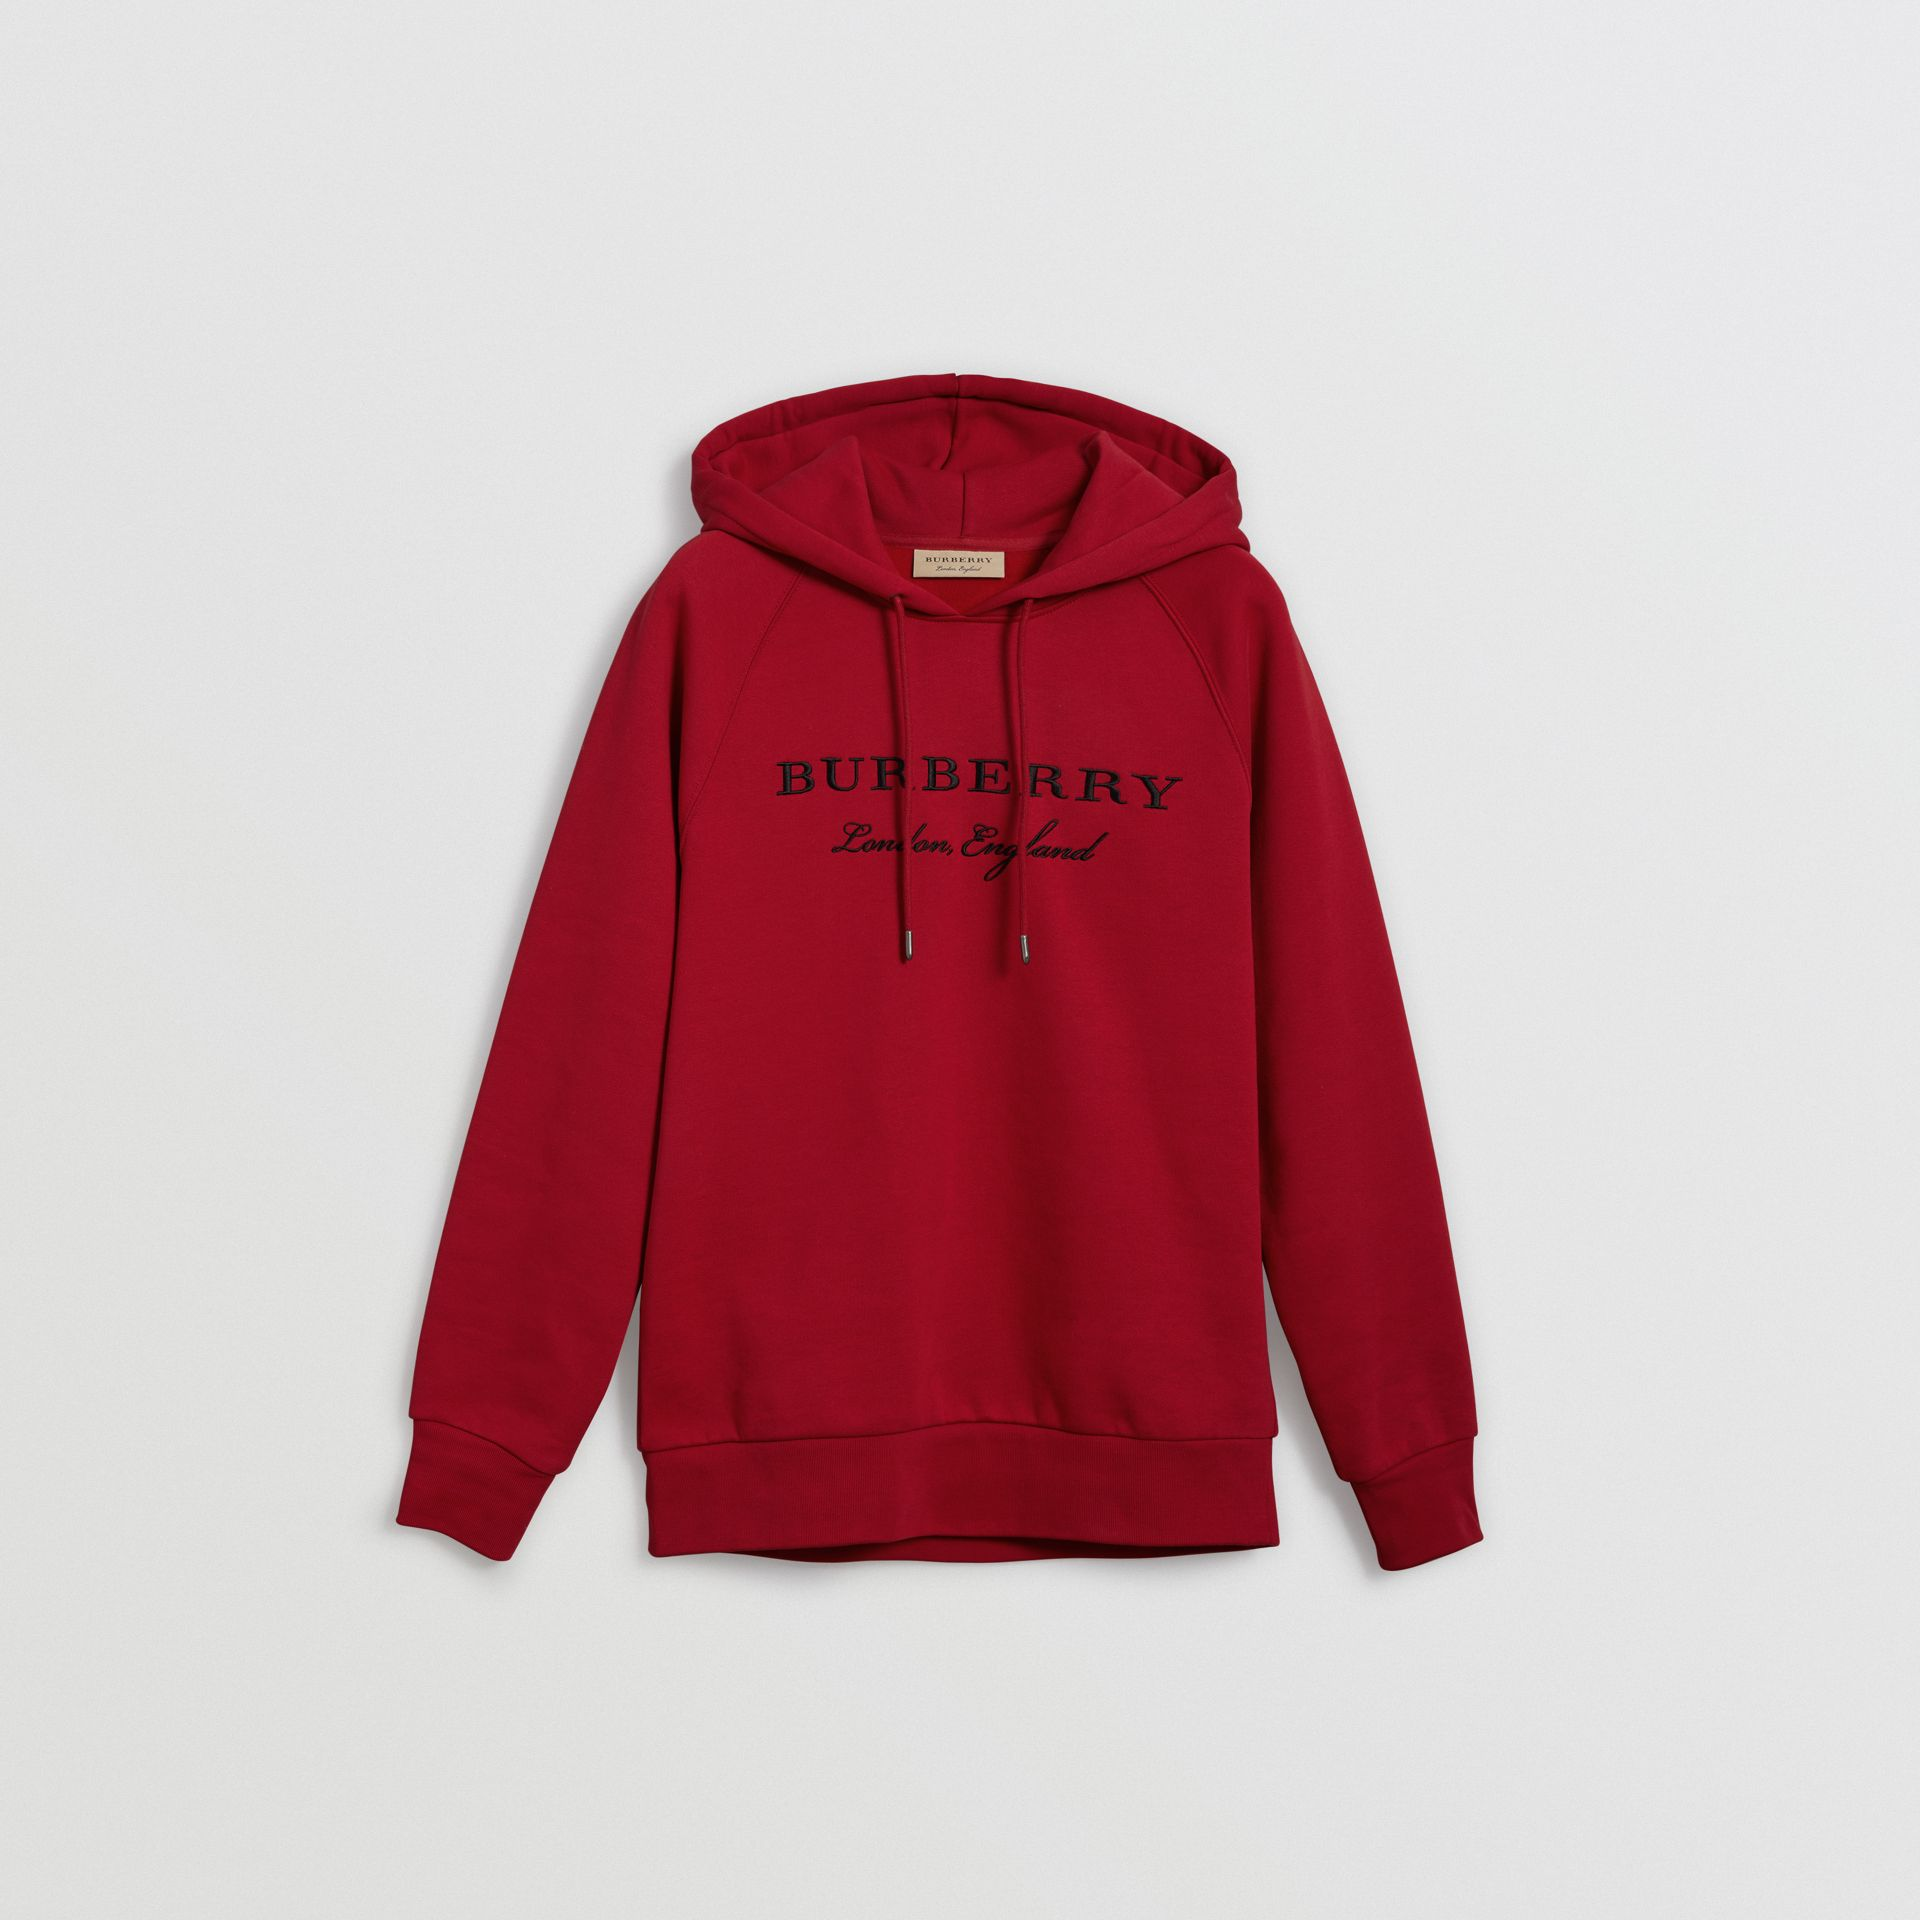 Embroidered Hooded Sweatshirt in Parade Red - Women | Burberry United Kingdom - gallery image 3